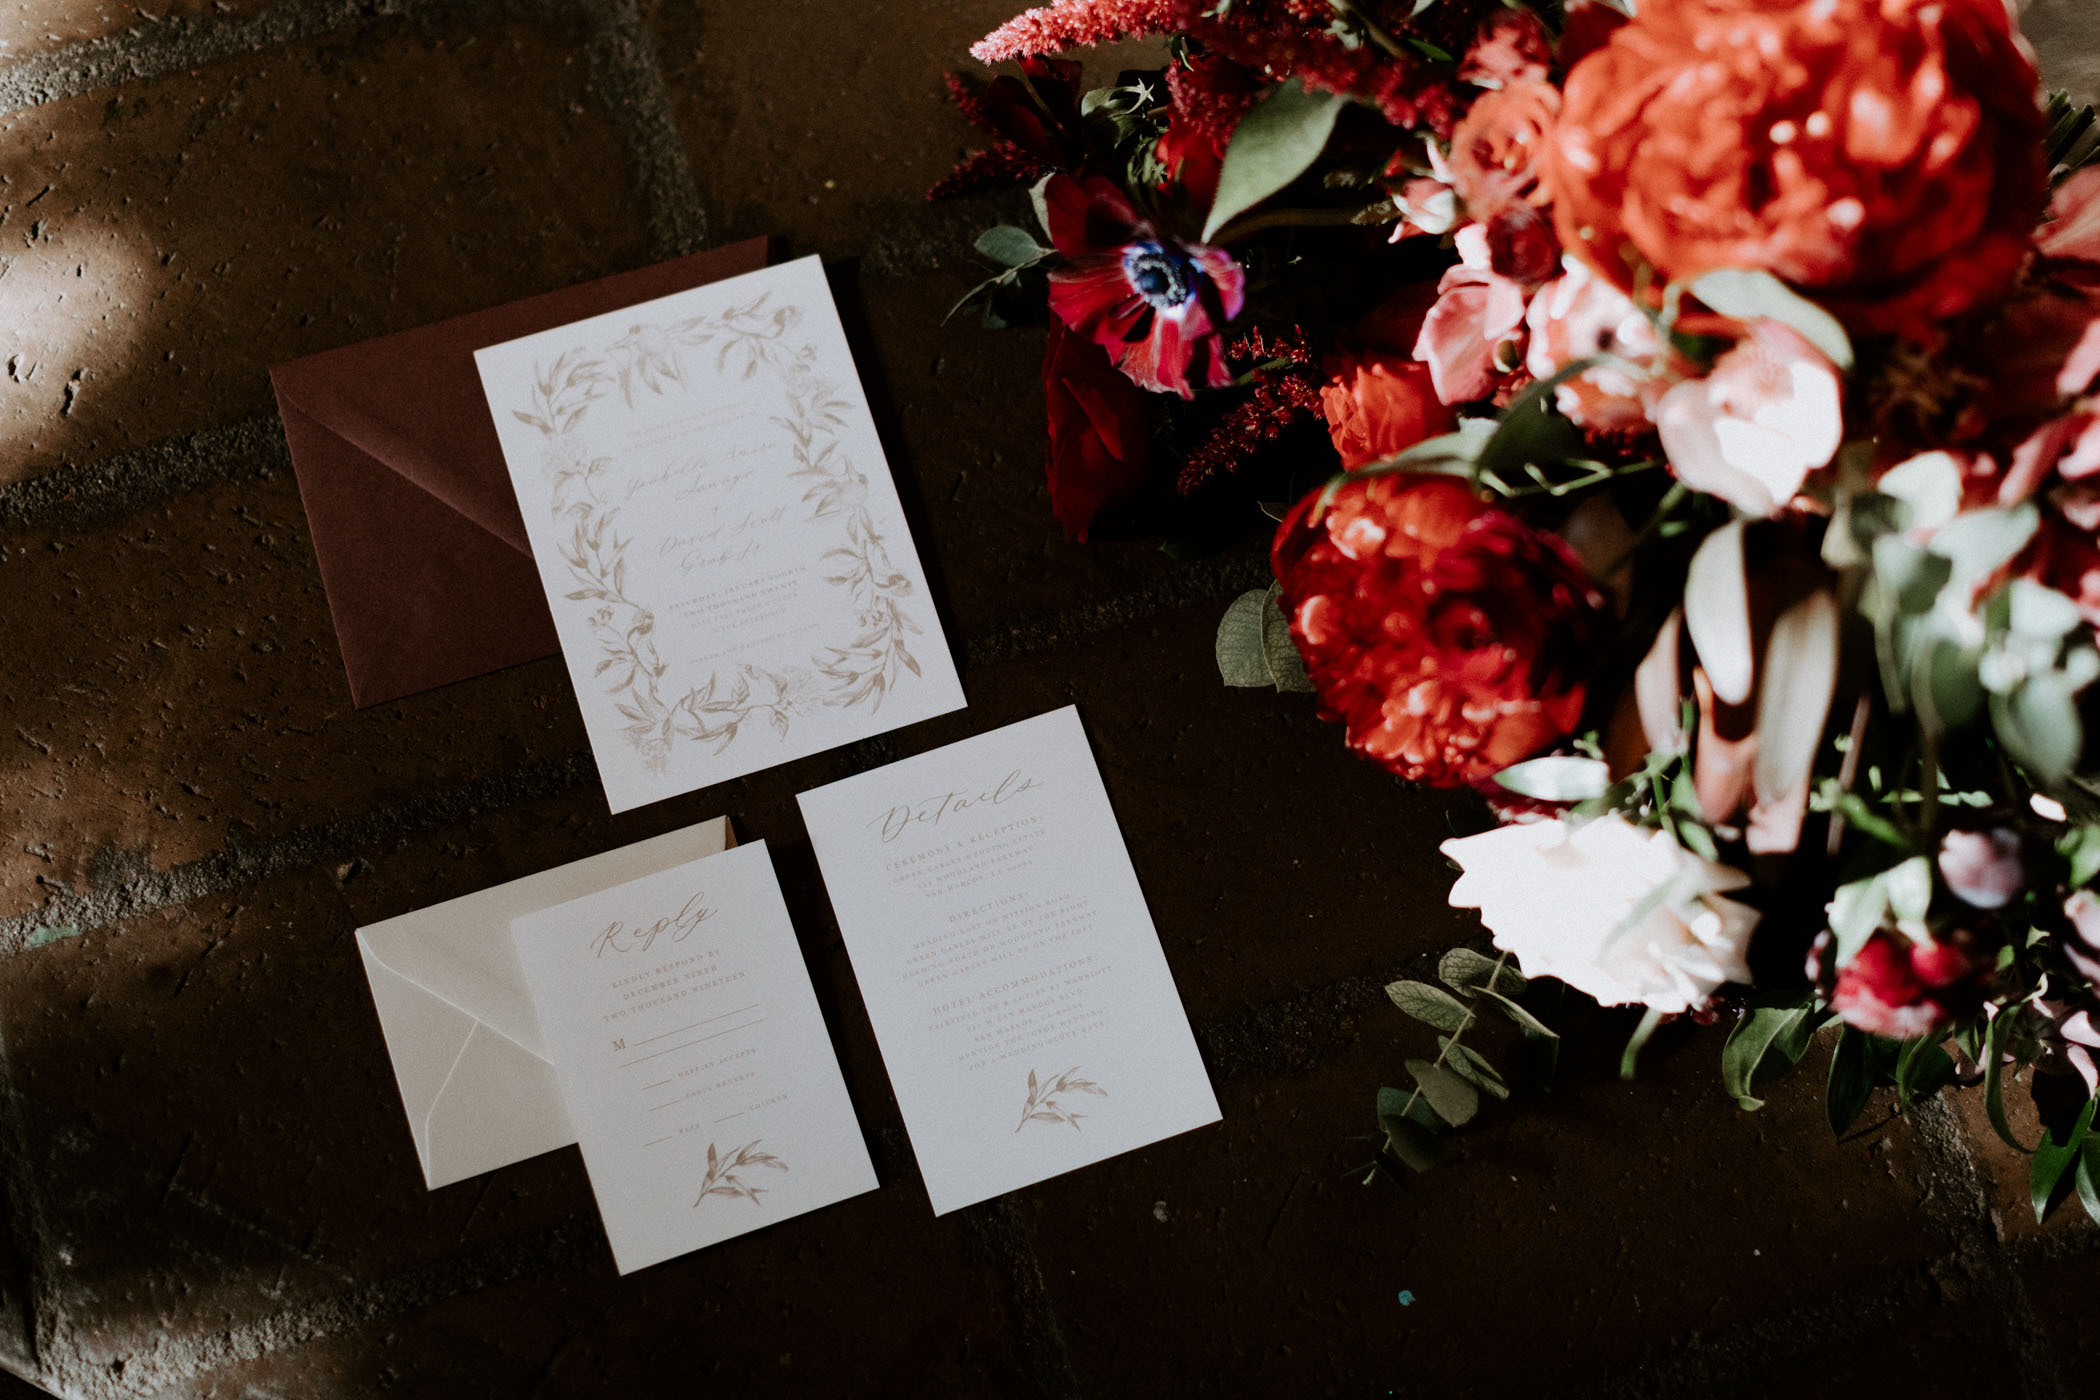 California wedding stationary detail photo with red flowers